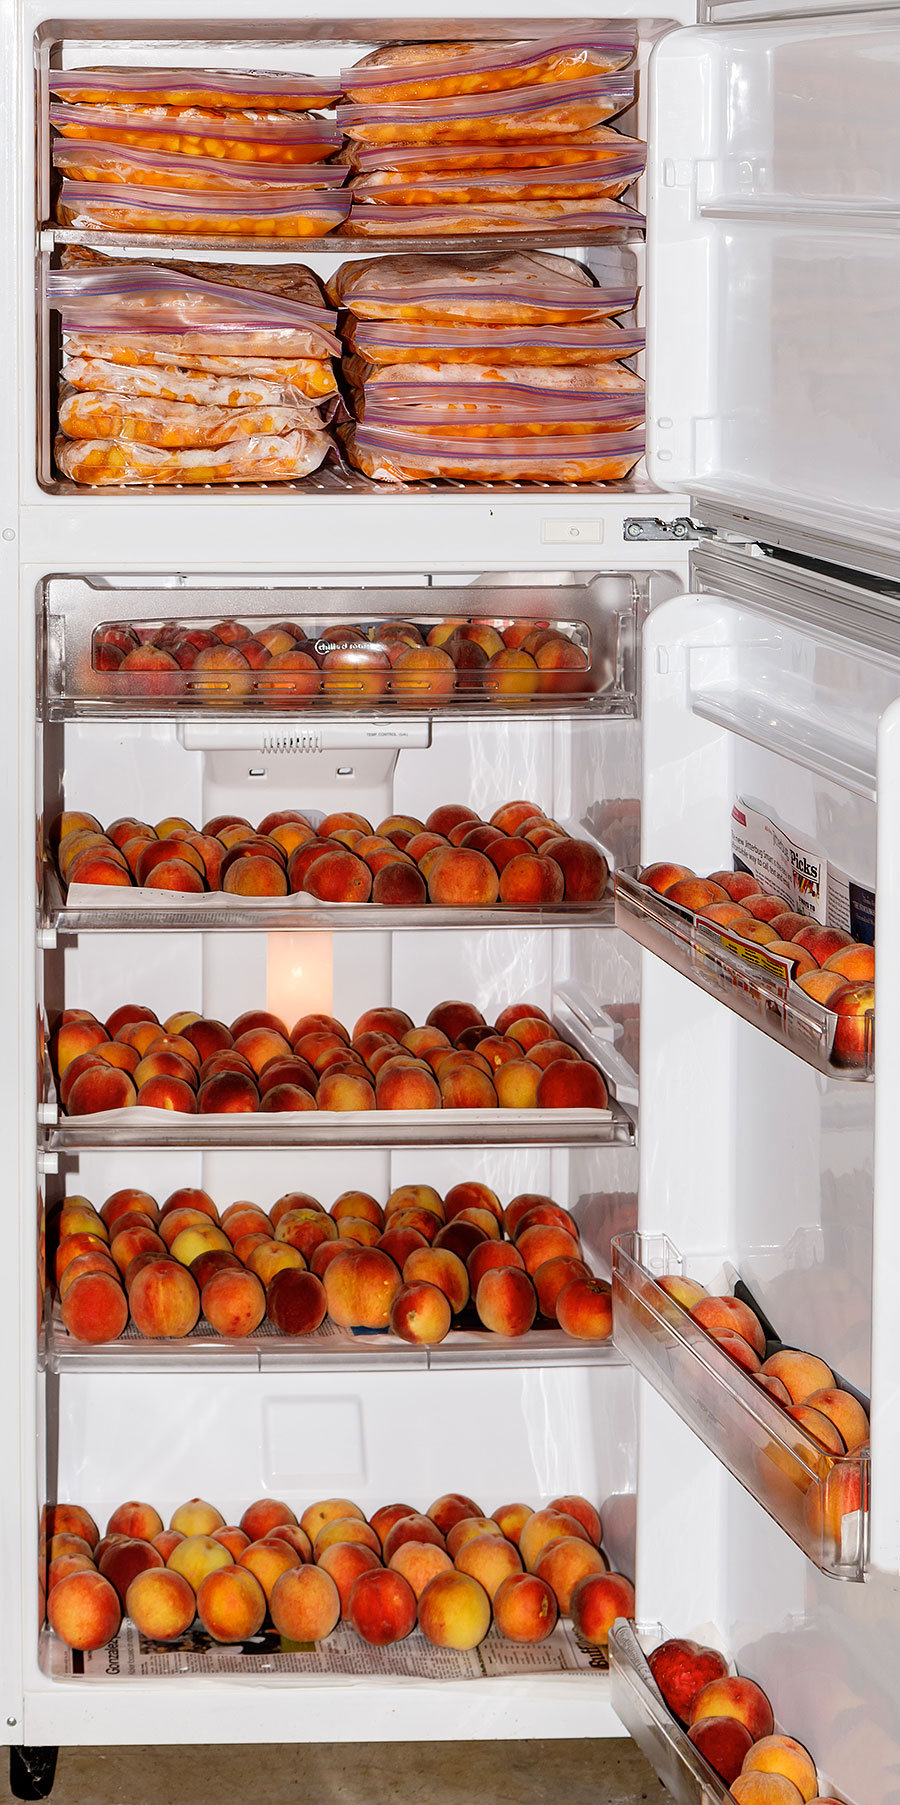 peaches in fridge freezer